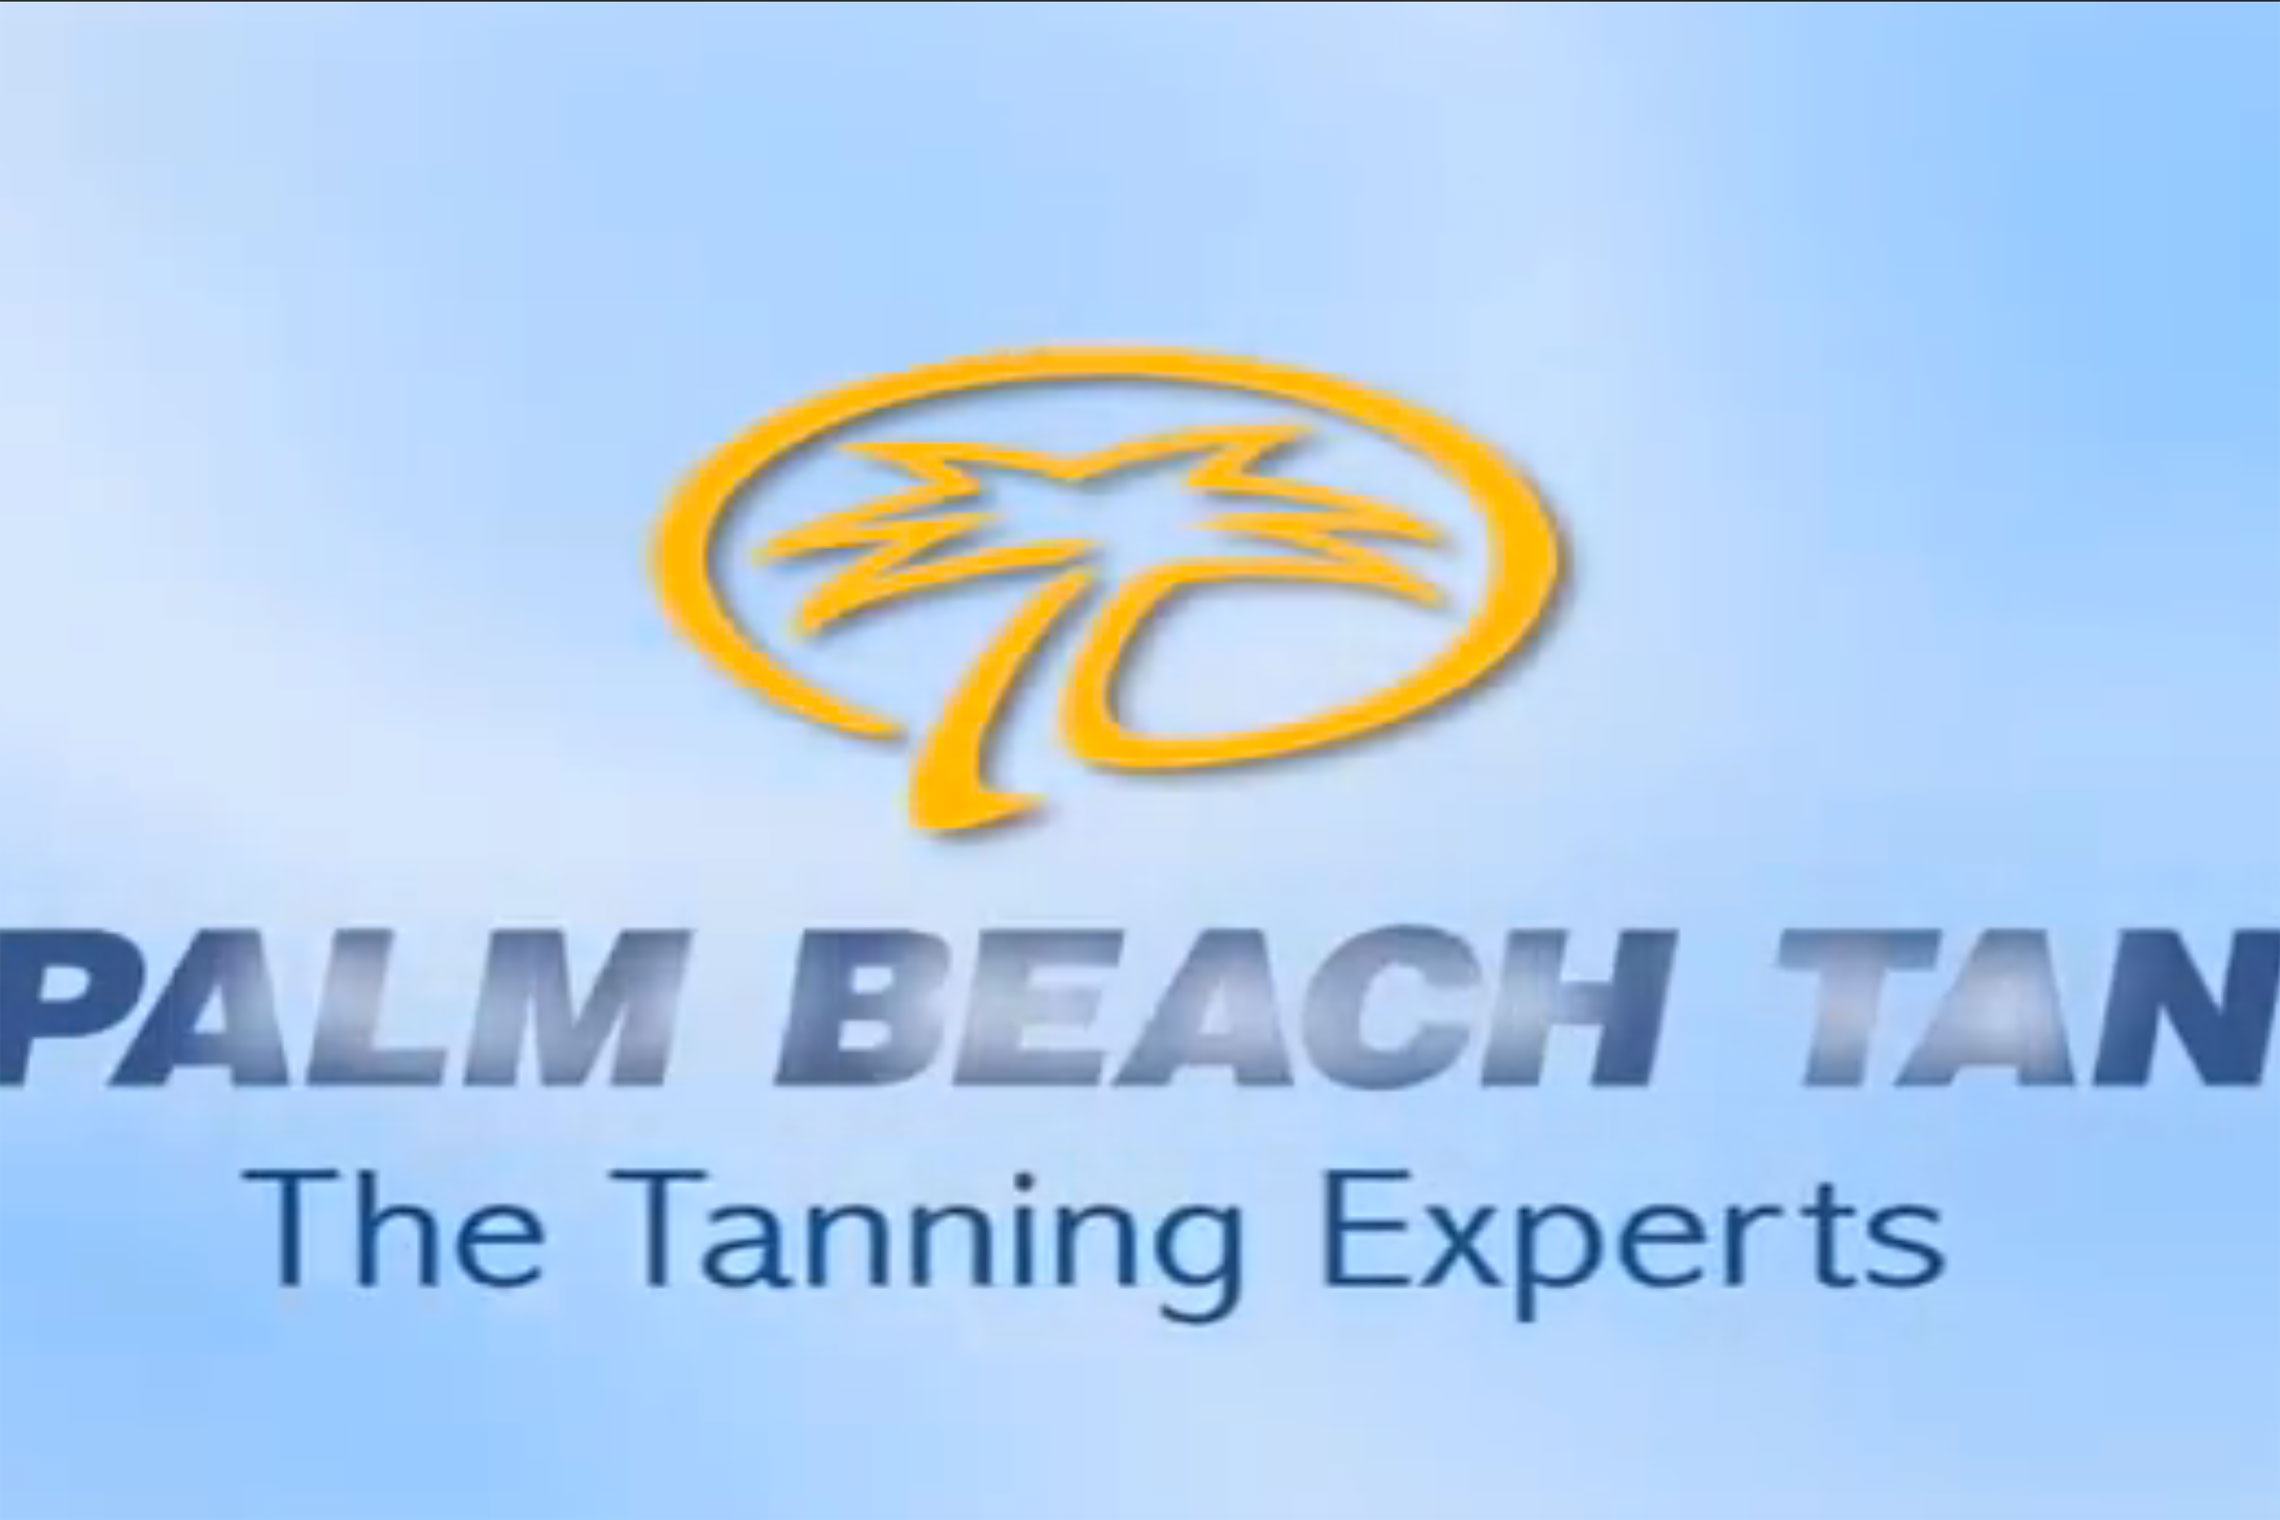 Palm Beach Tan Point-Of-Purchase